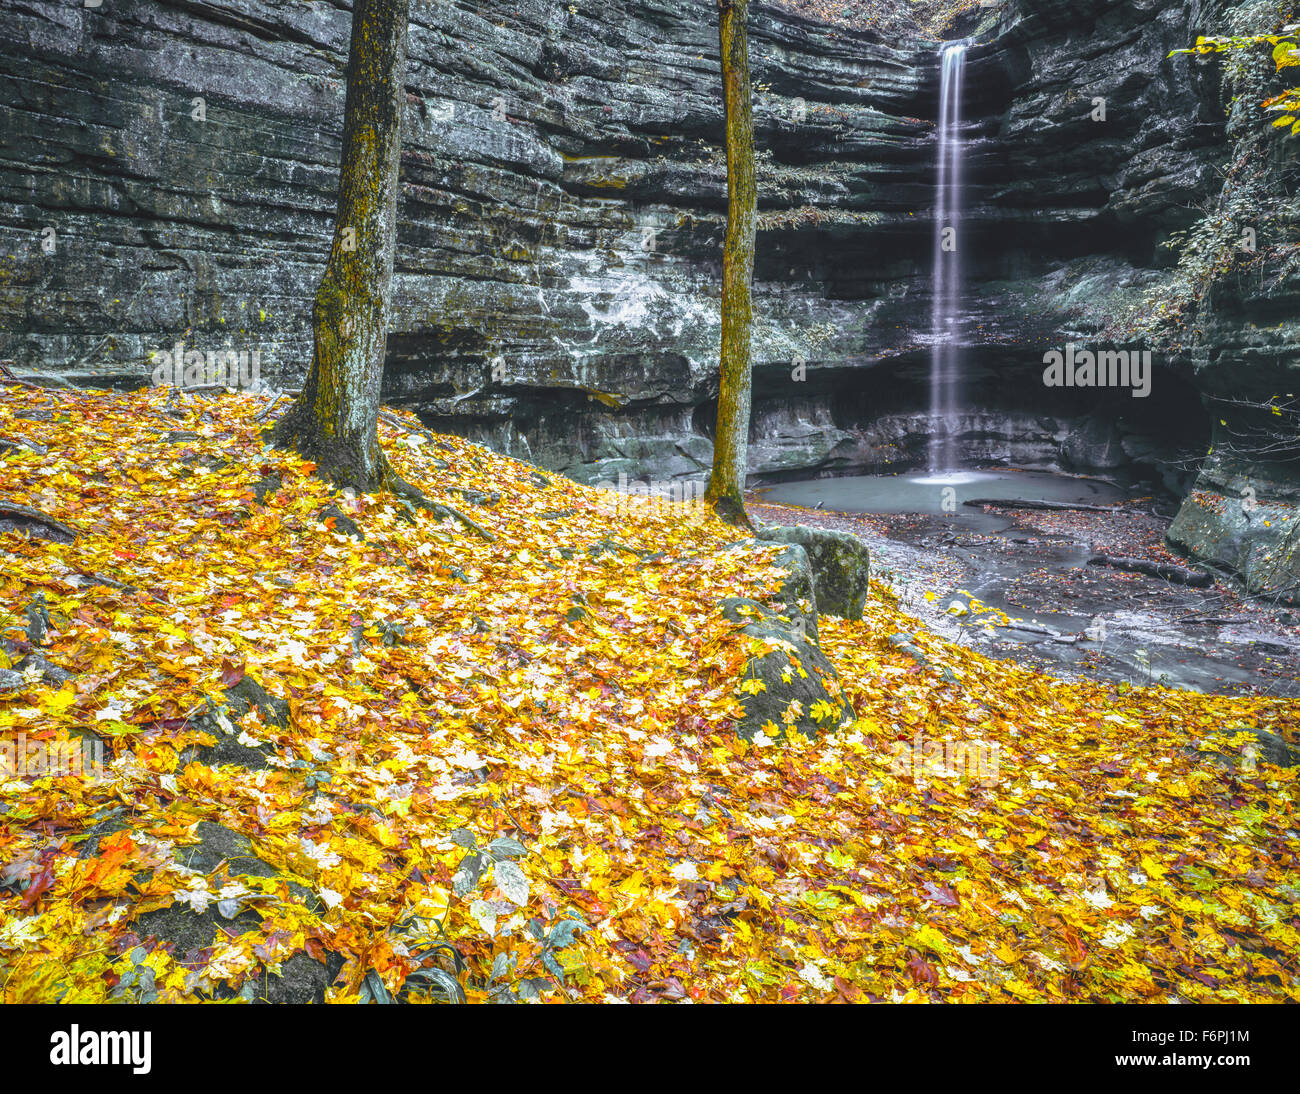 Starved Rock State Park, Illinois Near Illinois River - Stock Image